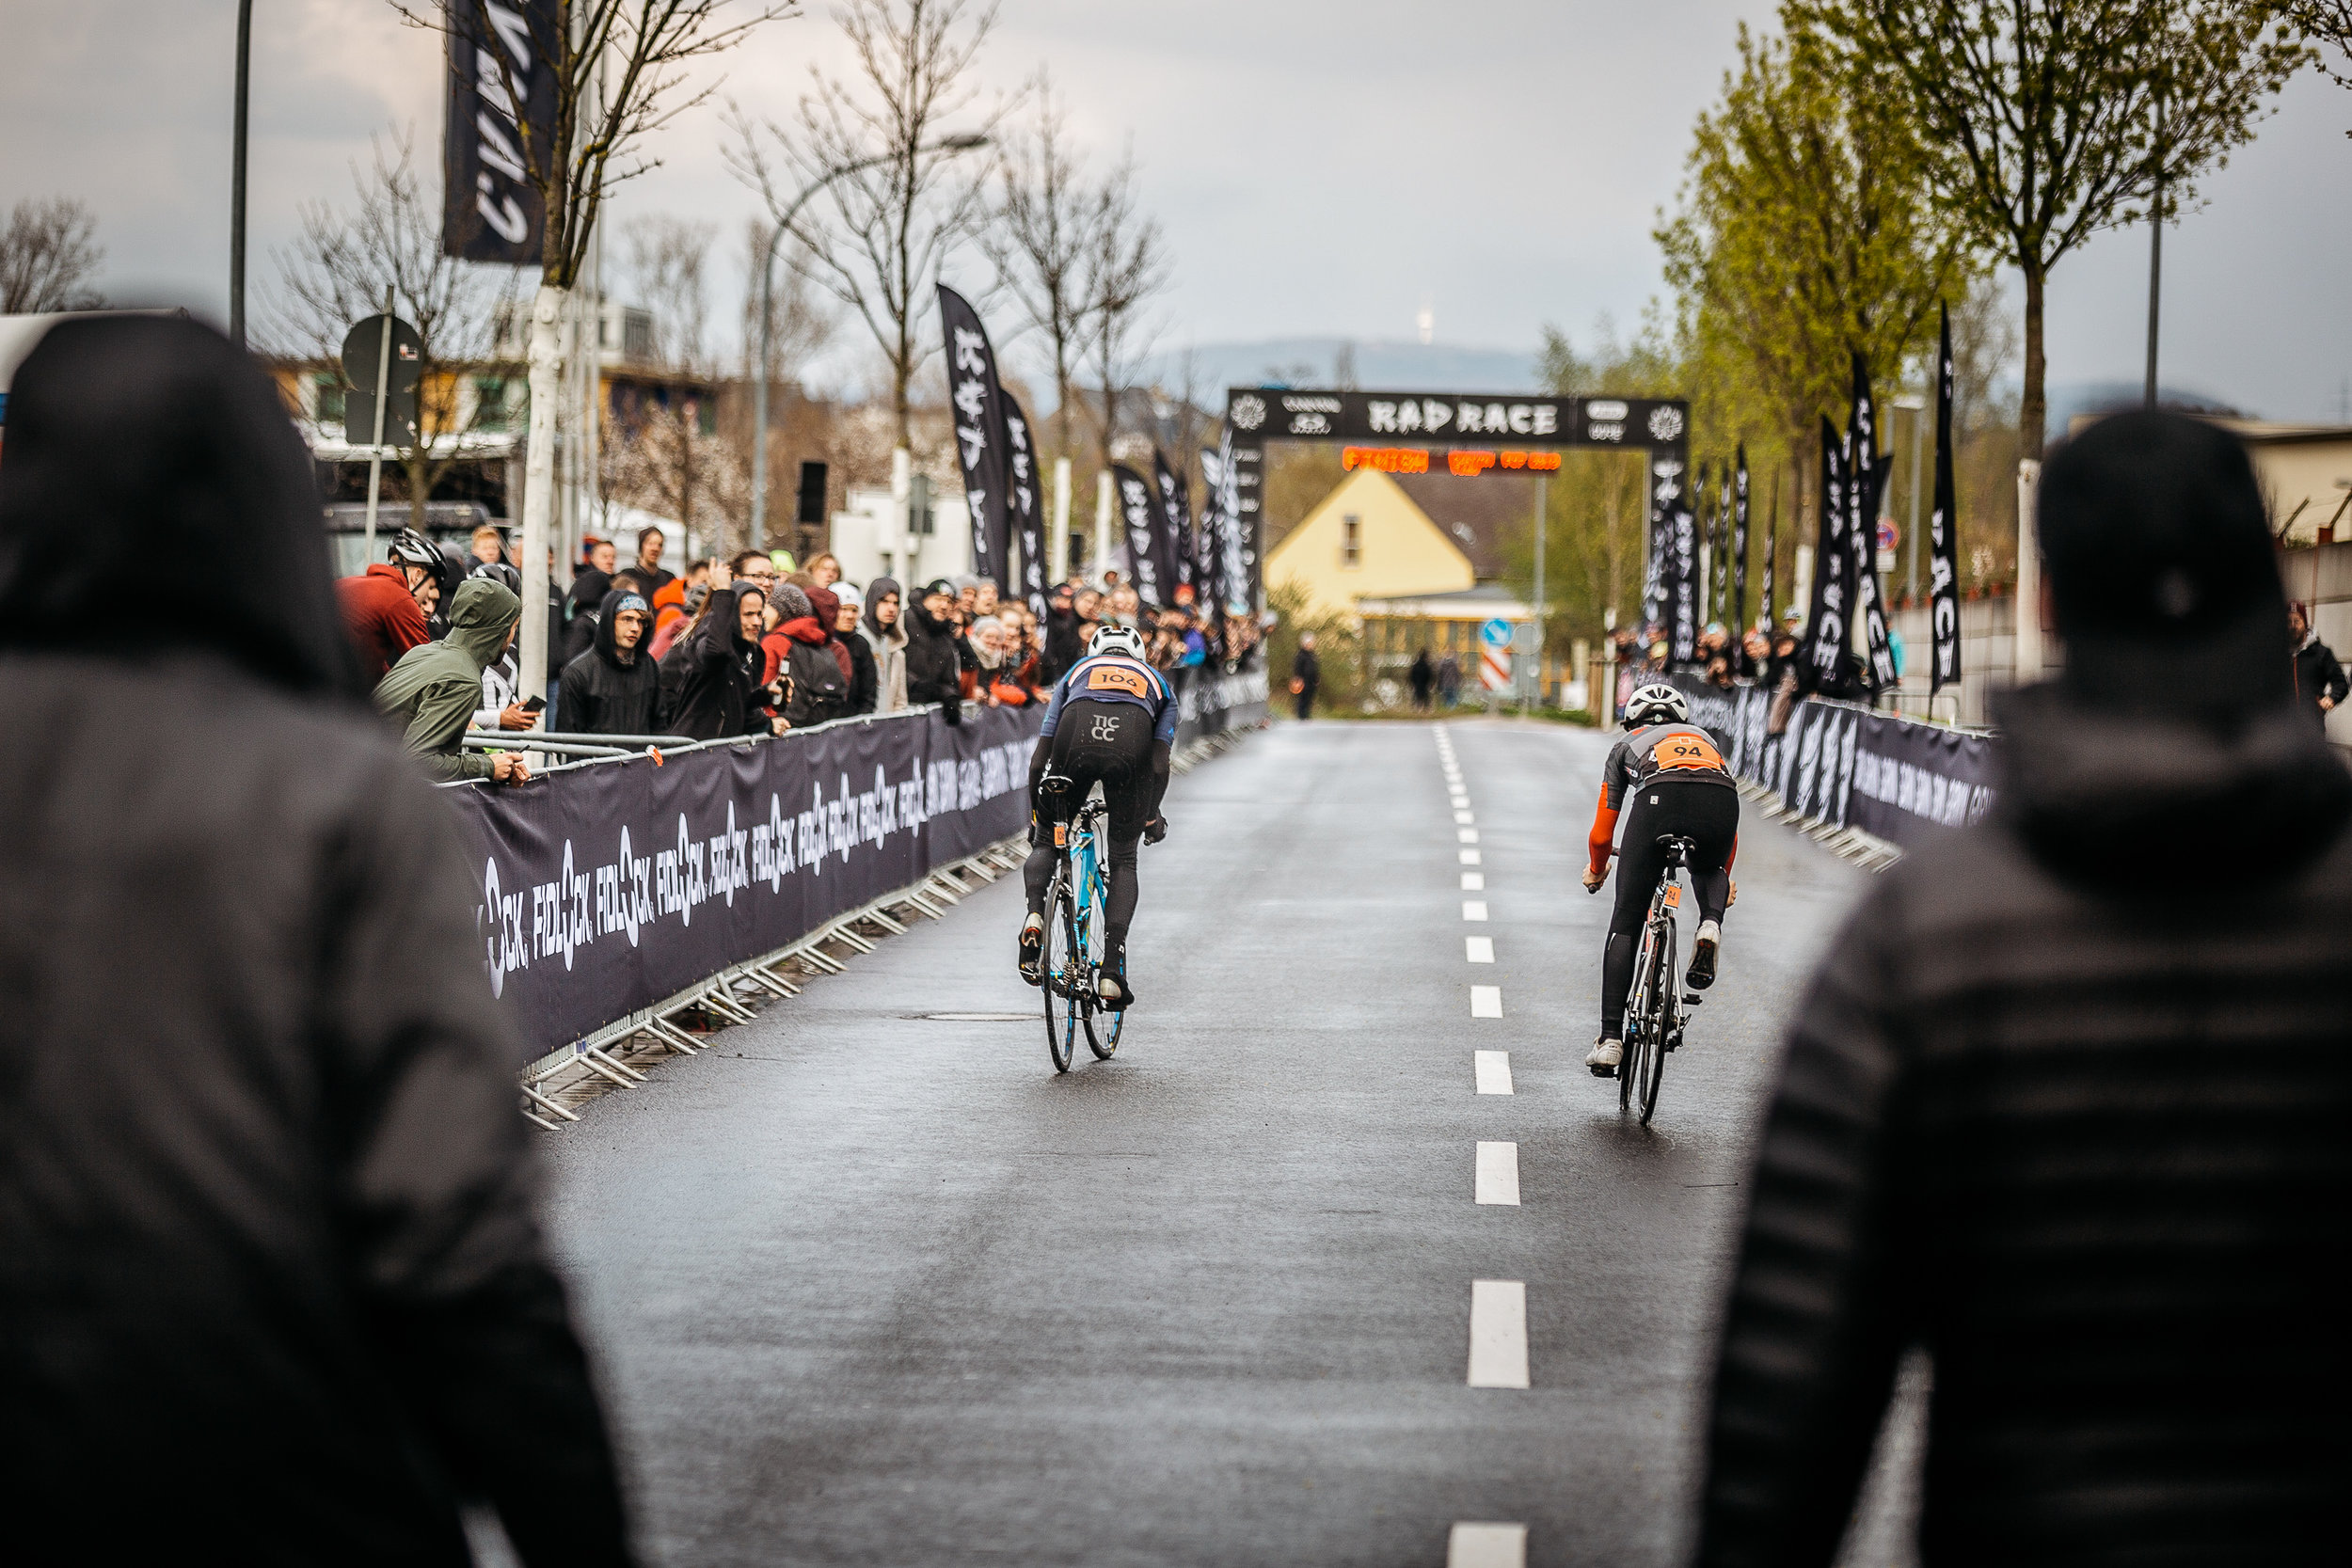 Rad-Race_Battle_13-04-2019_A8A4121.jpg